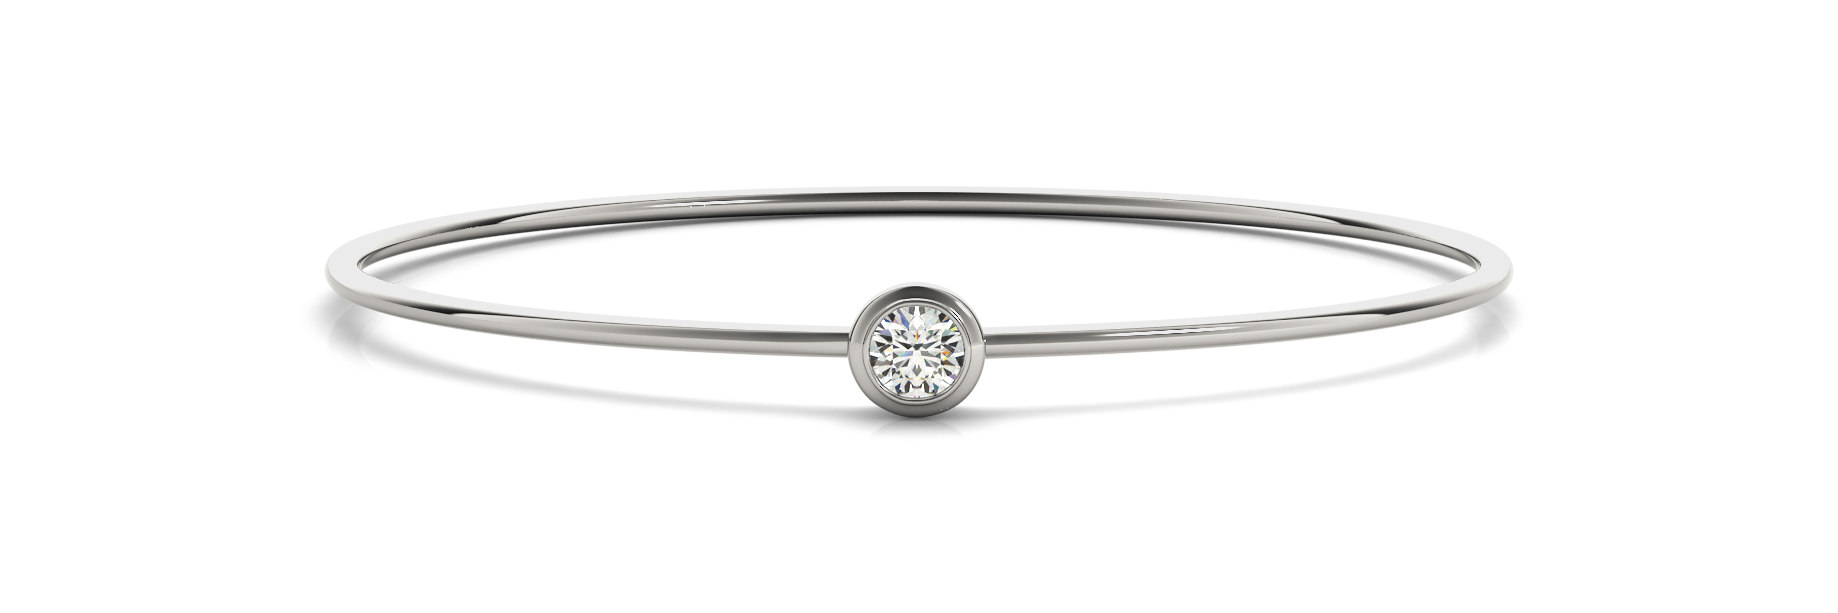 Round Diamond Solitaire Bezel Bangle